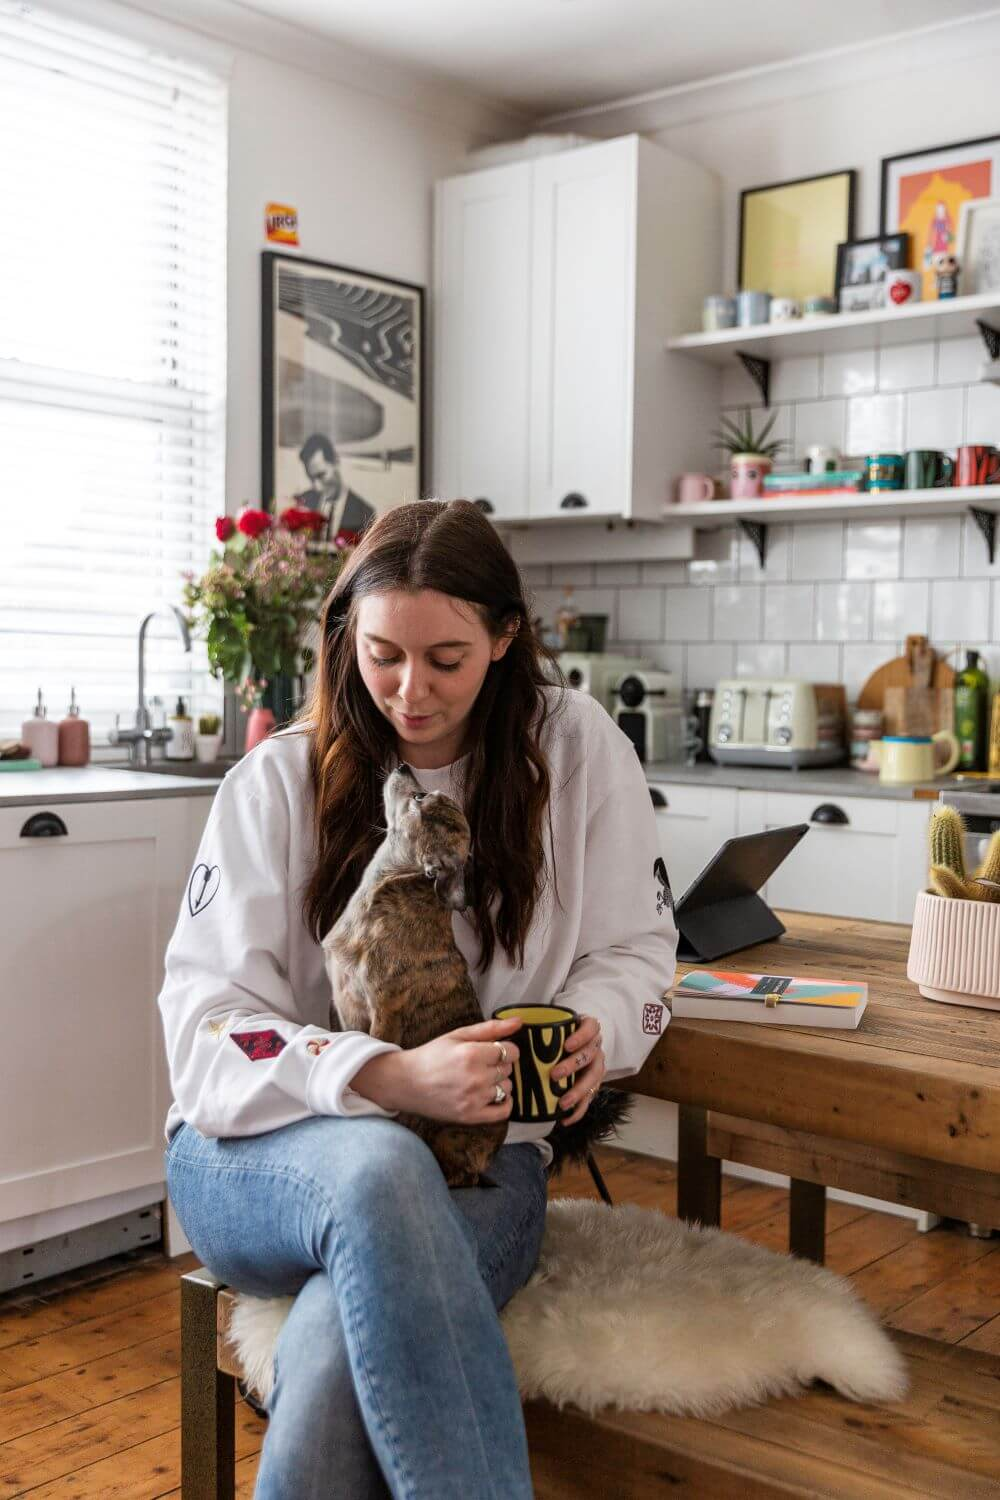 Emma jane palin sitting on a dining bench with her dog george for this colourful rental home tour